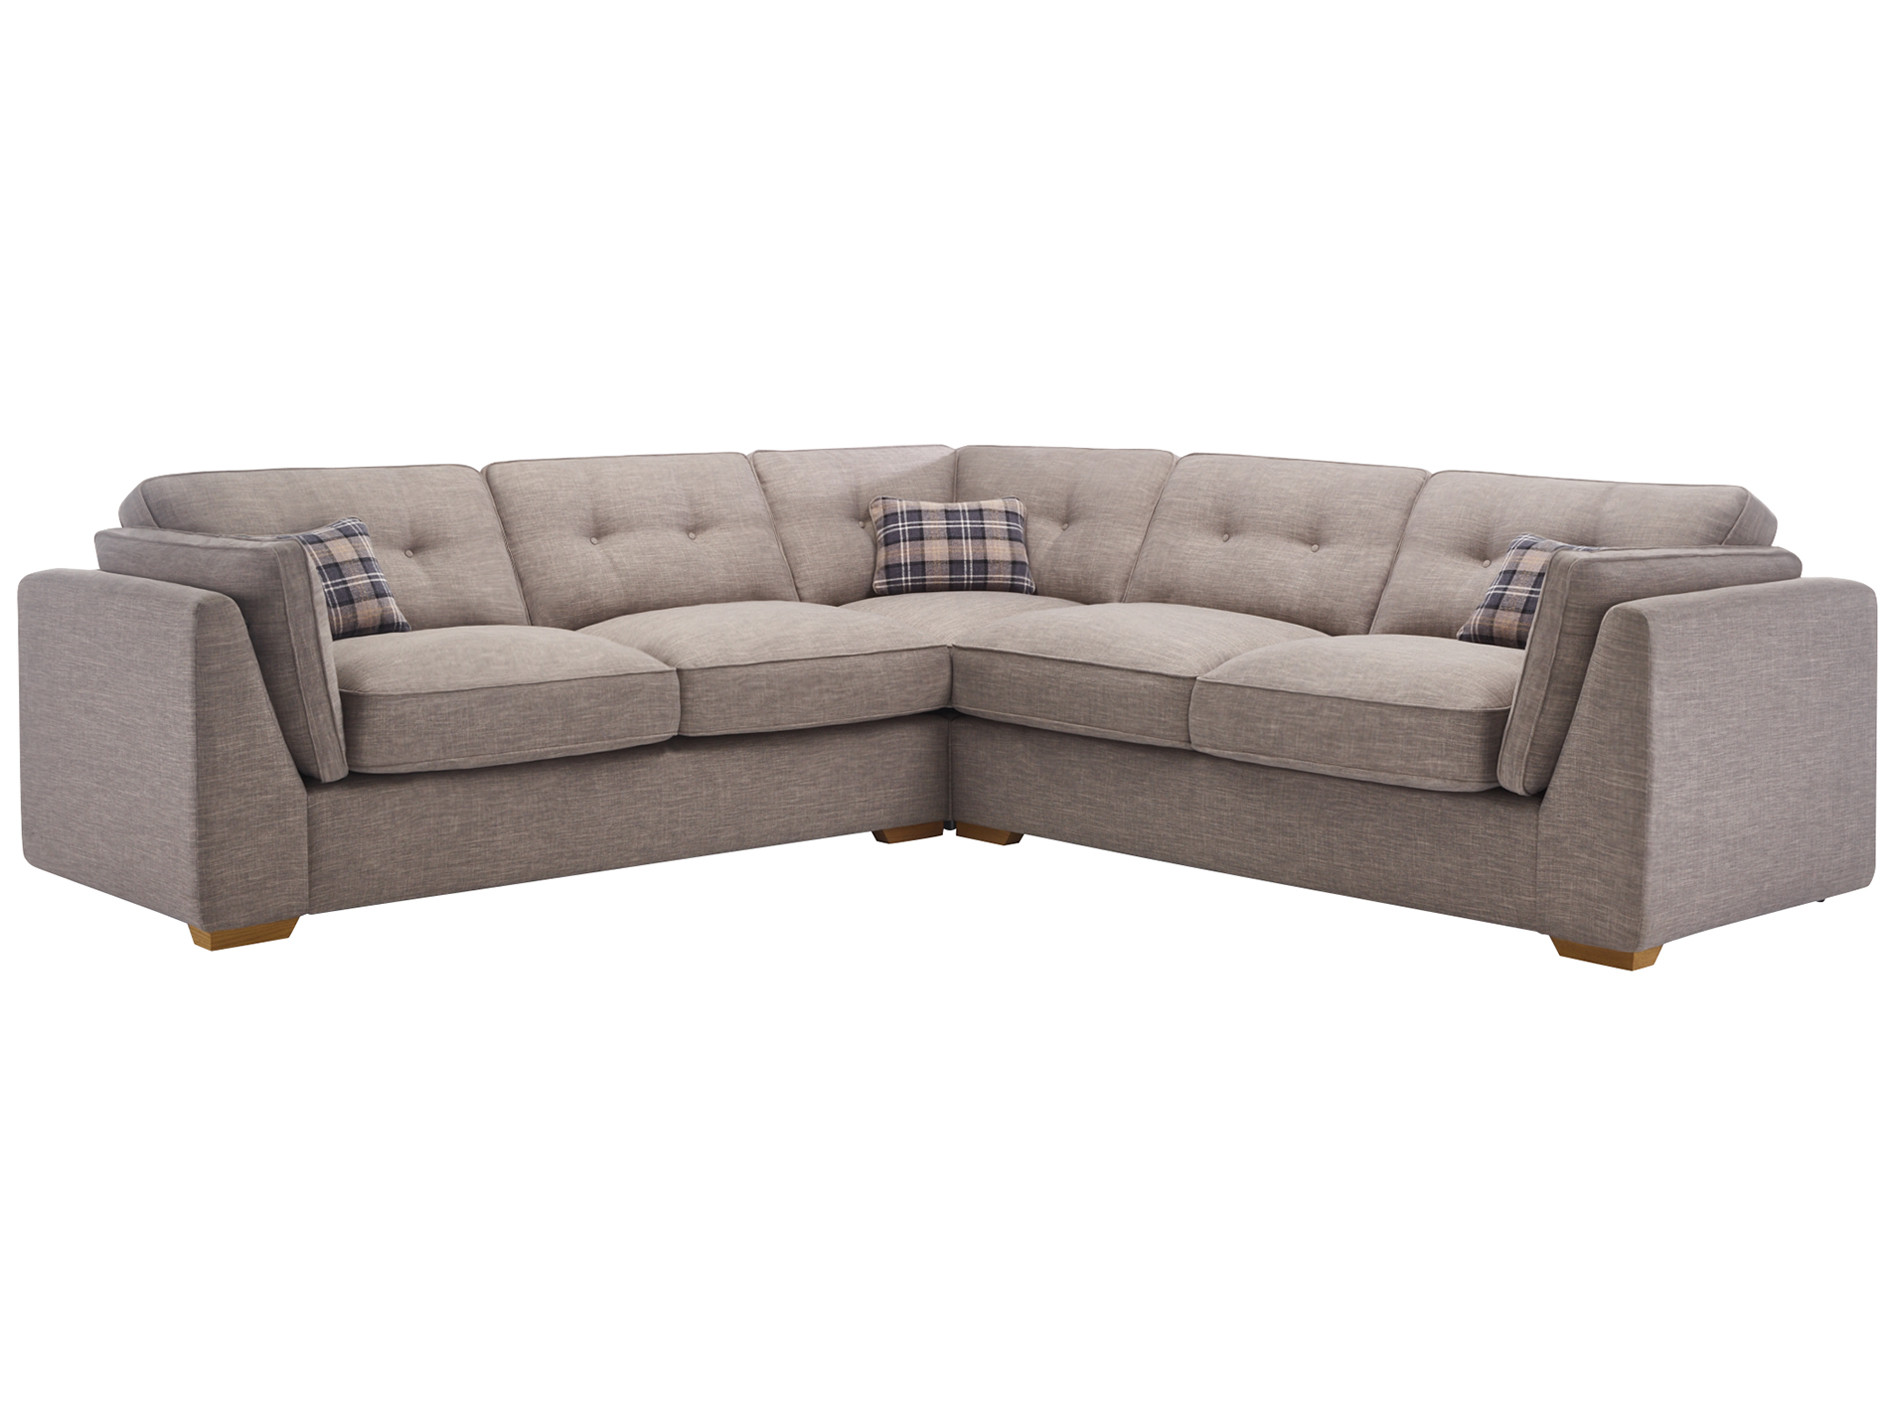 California 4 Seater High Back Corner Sofa Civic Smoke